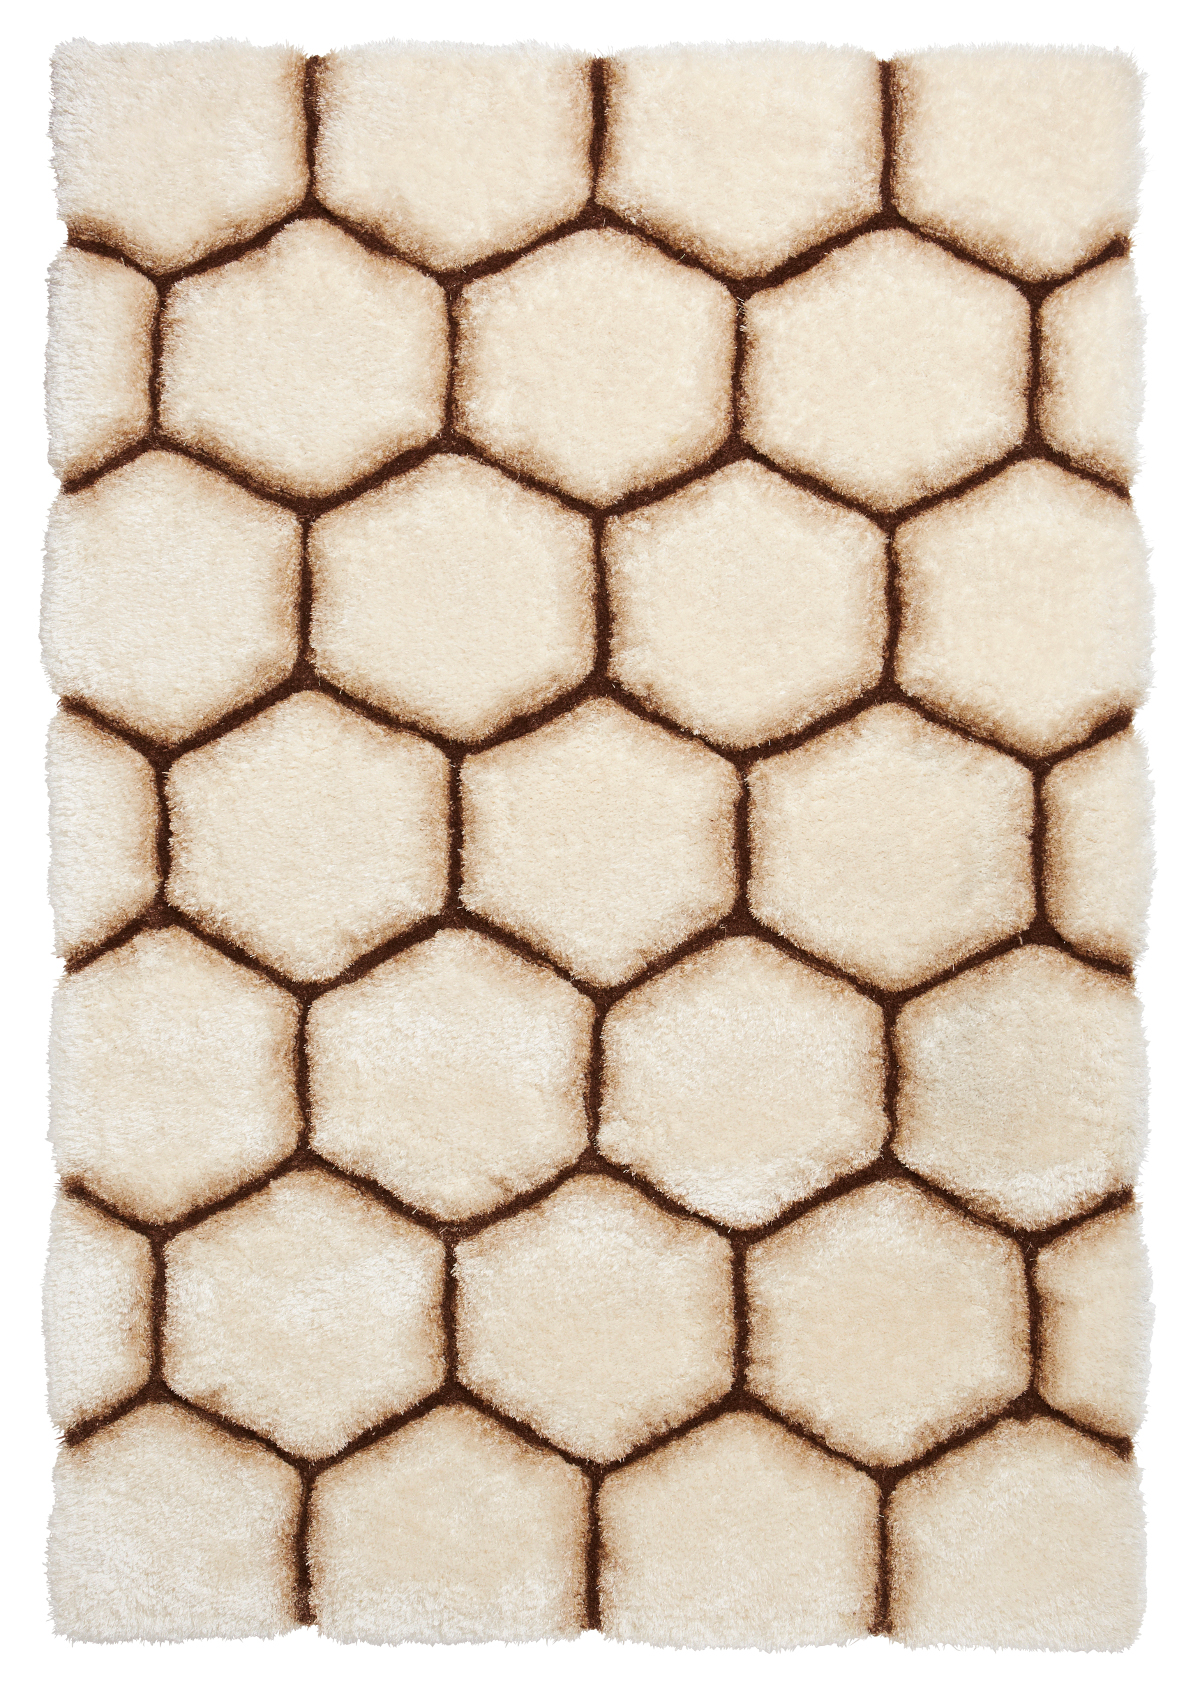 Cream Amp Brown Hexagon Rug Super Soft Shaggy Pile Noble